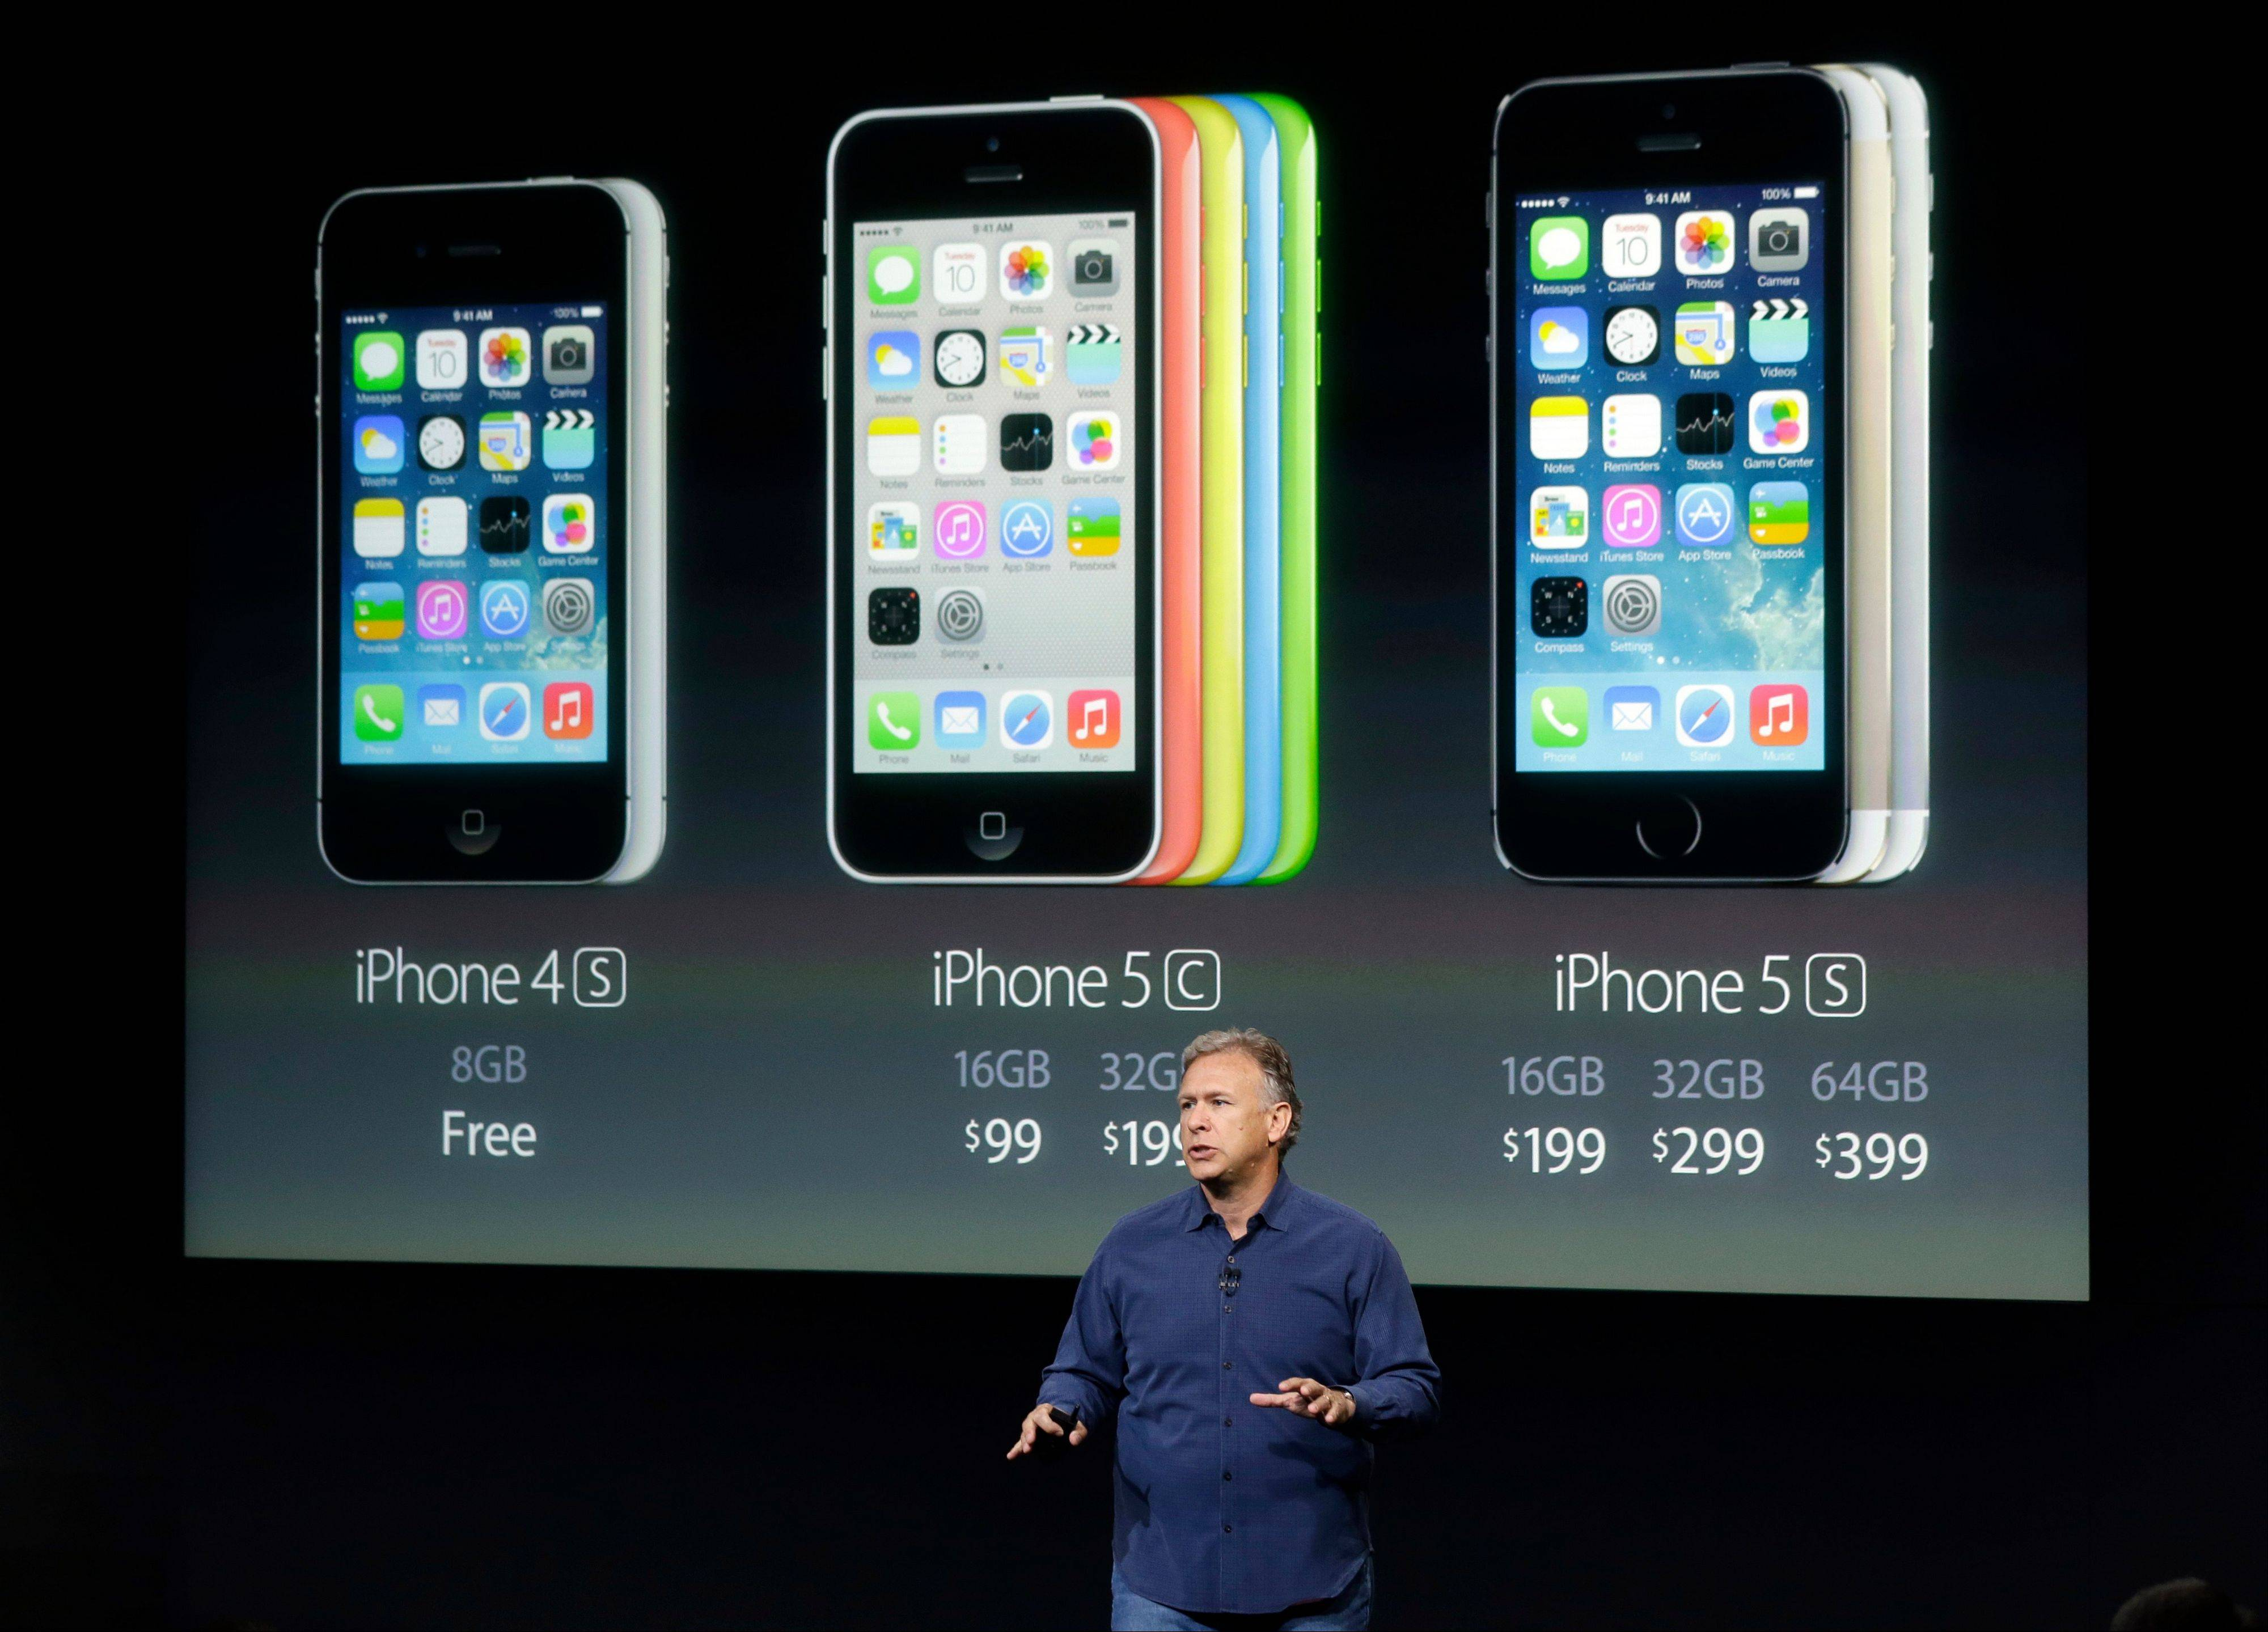 Phil Schiller, Apple's senior vice president of worldwide product marketing, speaks onstage during the introduction of the new iPhone 5c and 5s in Cupertino, Calif.